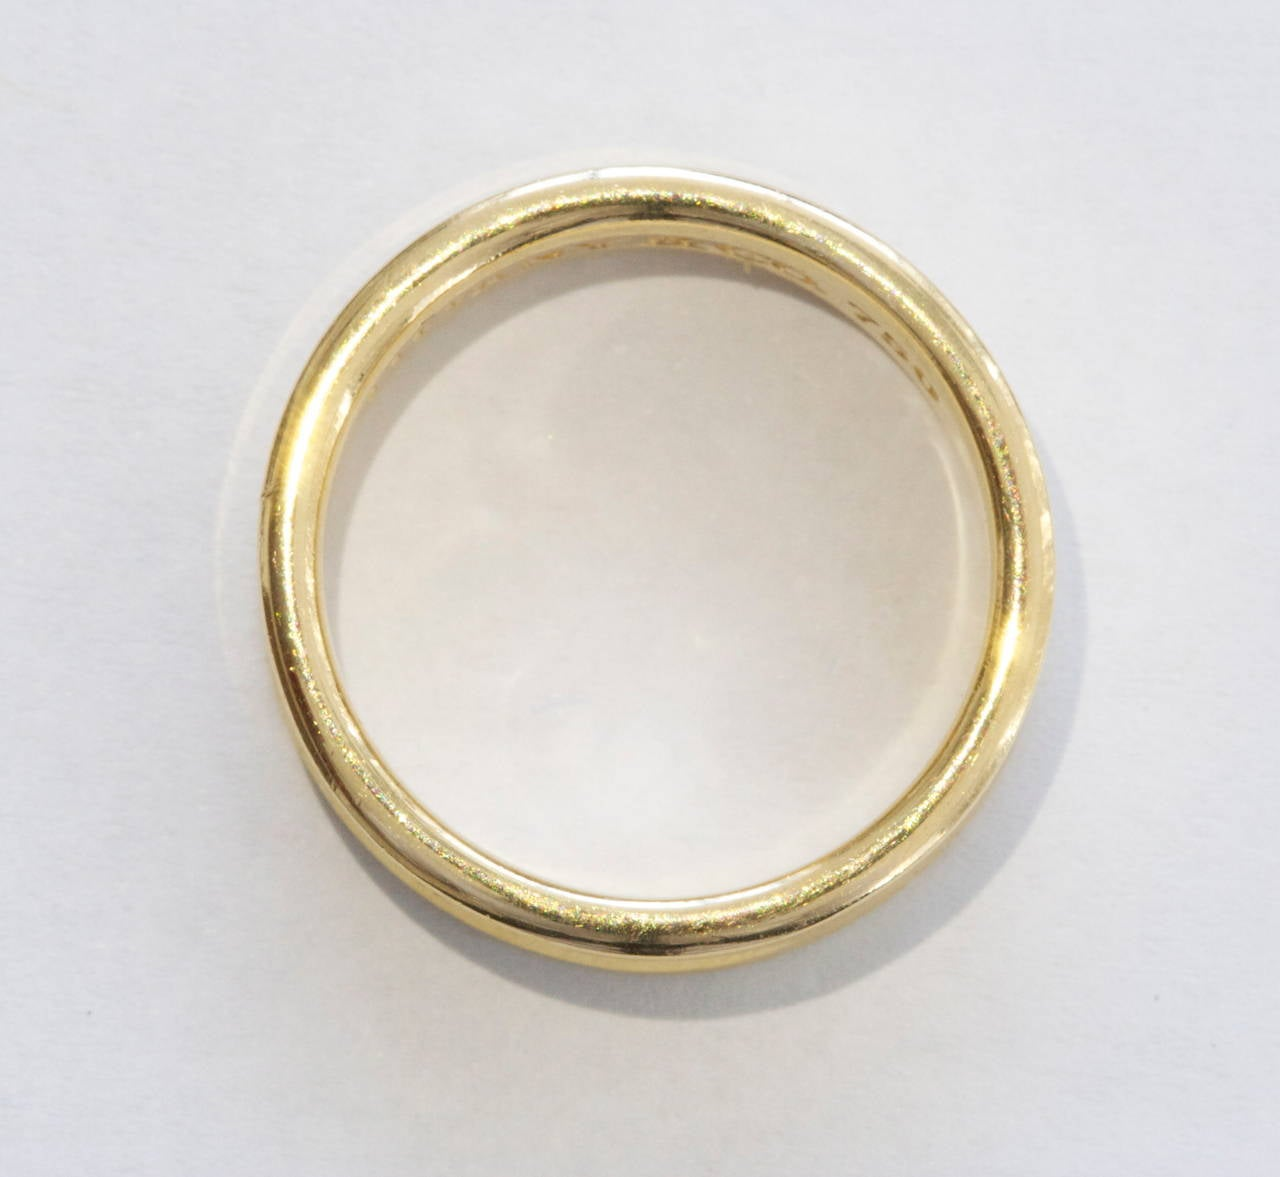 Tiffany & Co. 1837 Gold Wide Band Ring 5